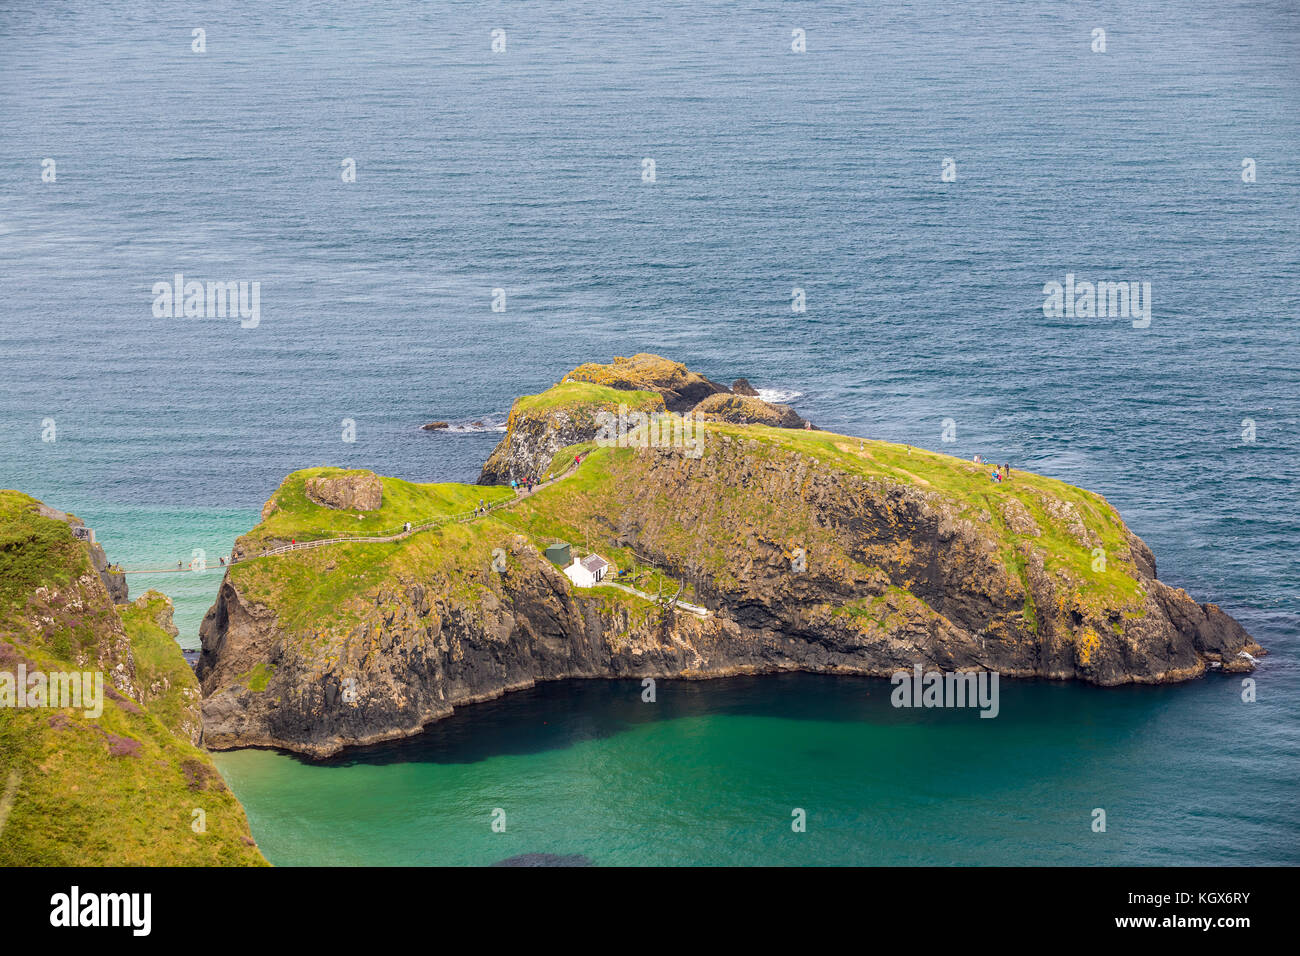 Carrick-a-Rede Rope Bridge in Northern Ireland landscape near Ballintoy. - Stock Image